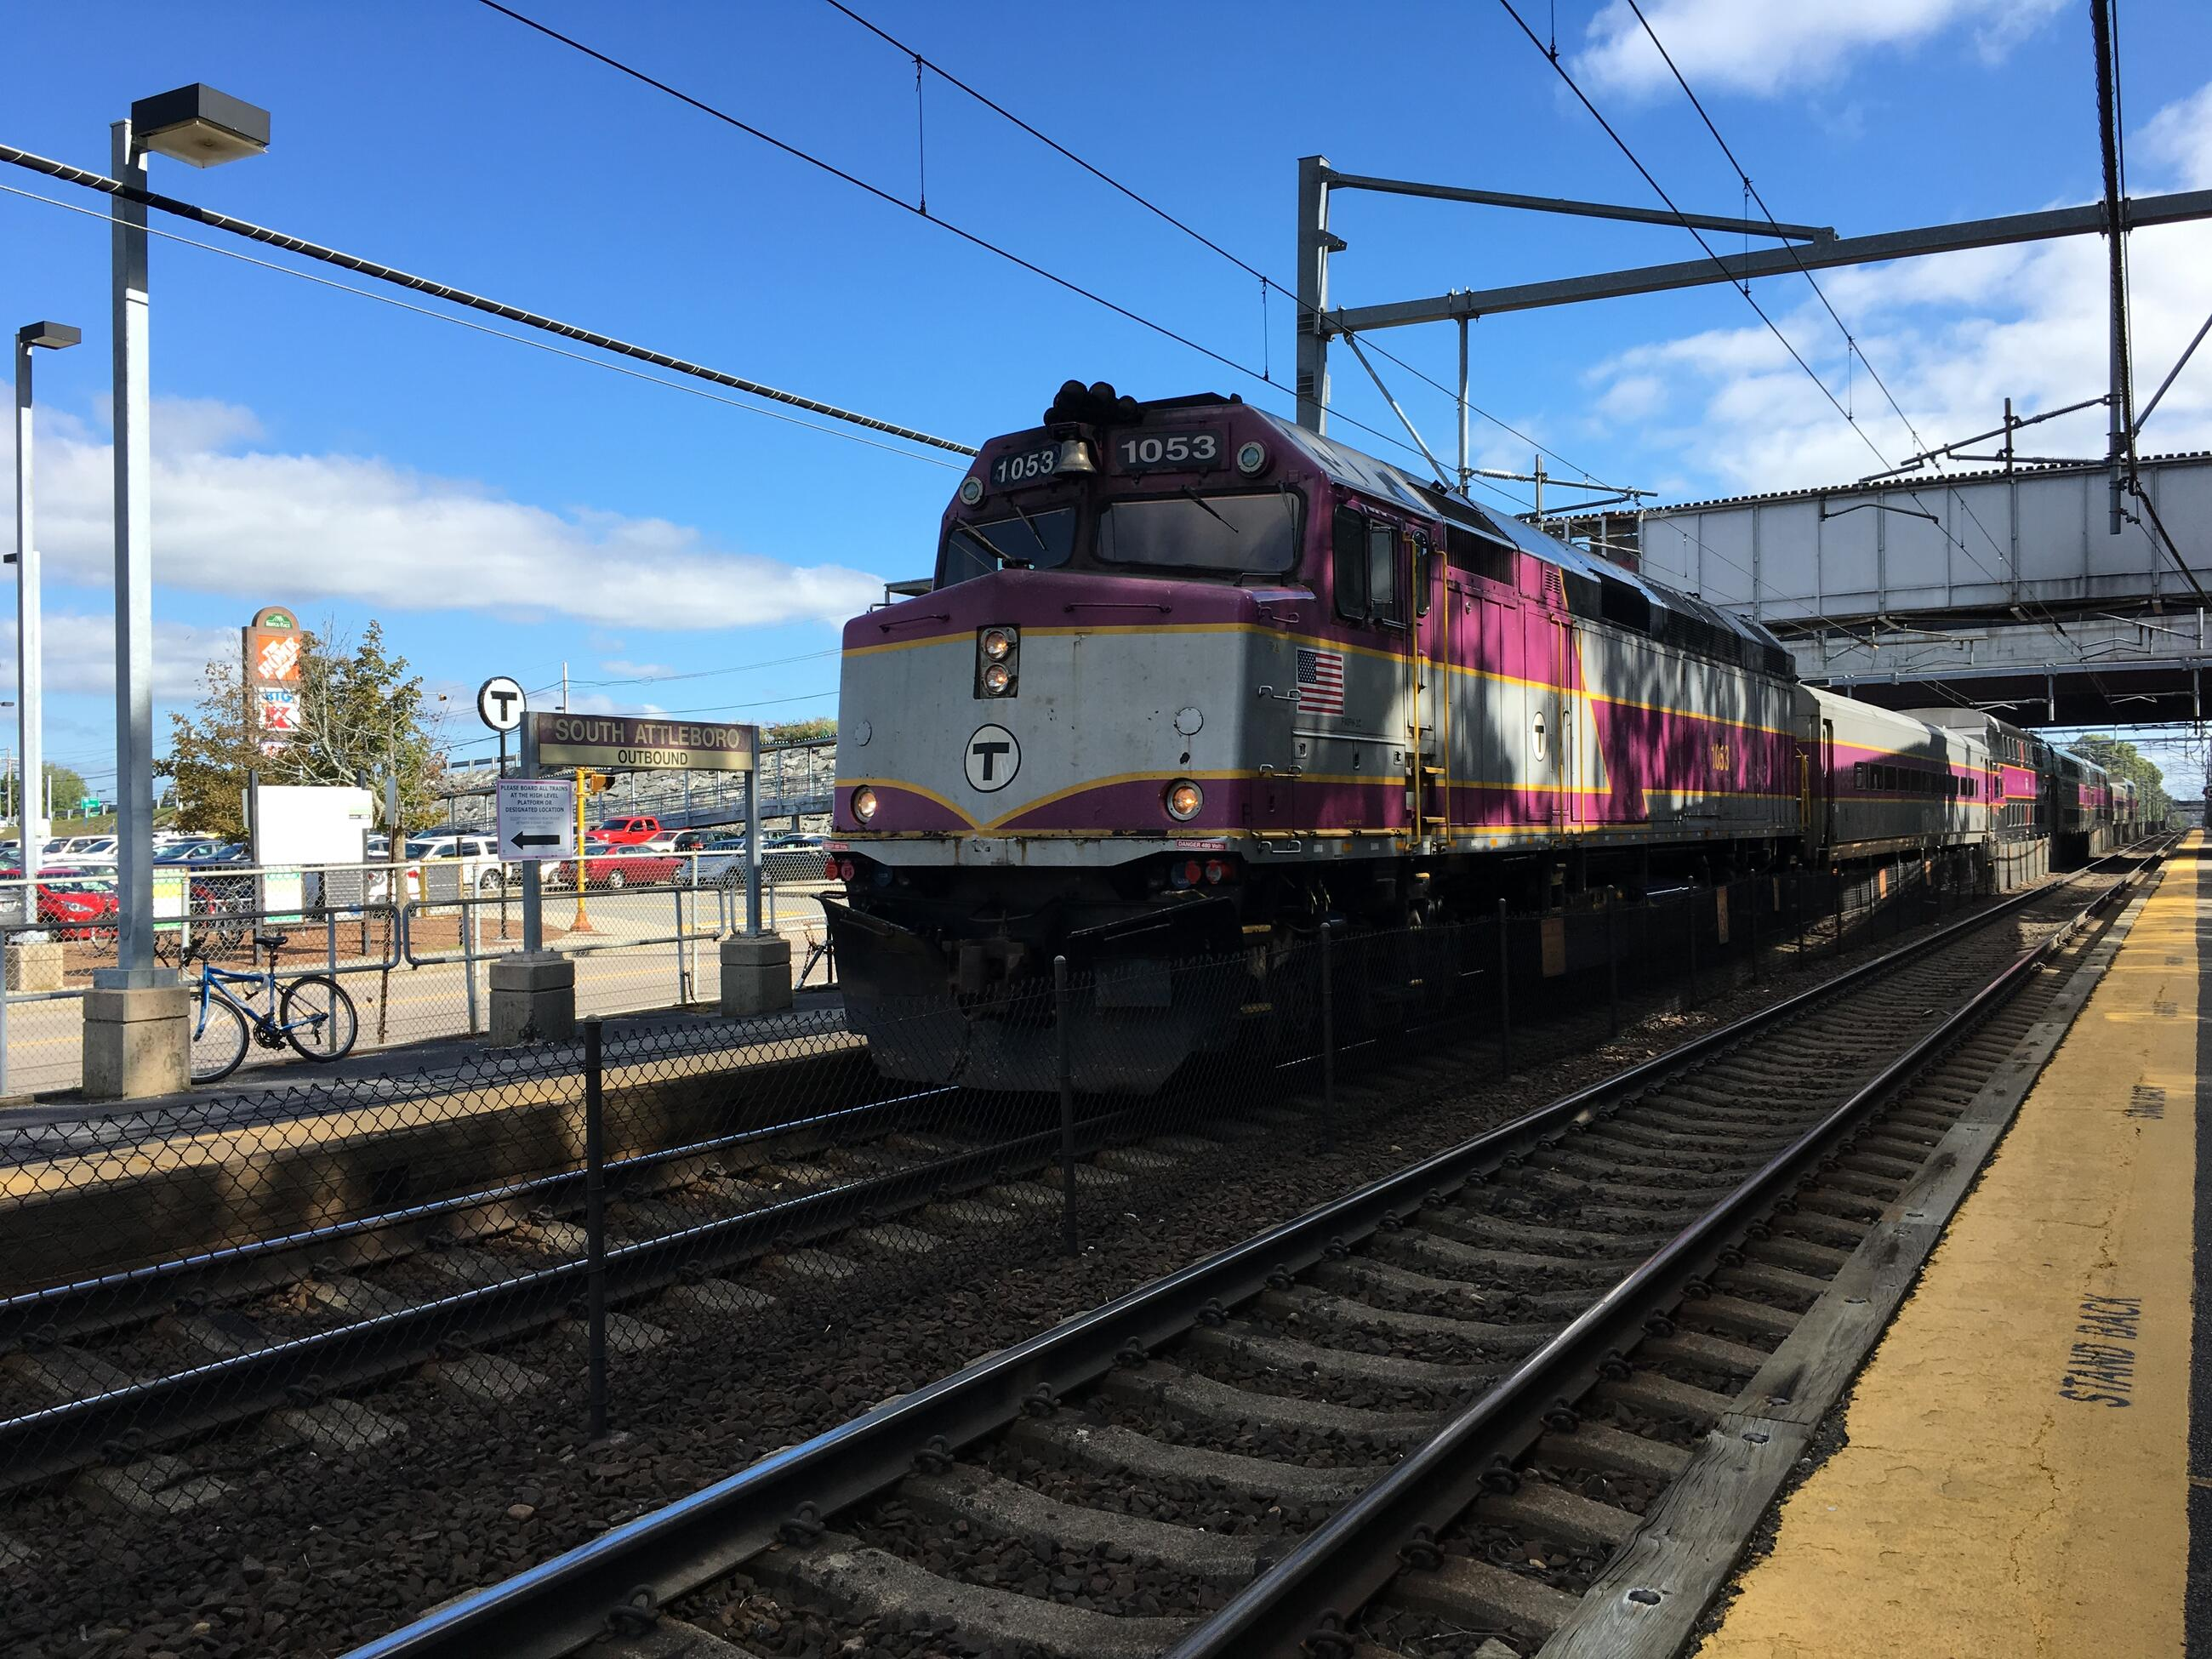 View of outbound commuter rail train stopped at the South Attleboro station.